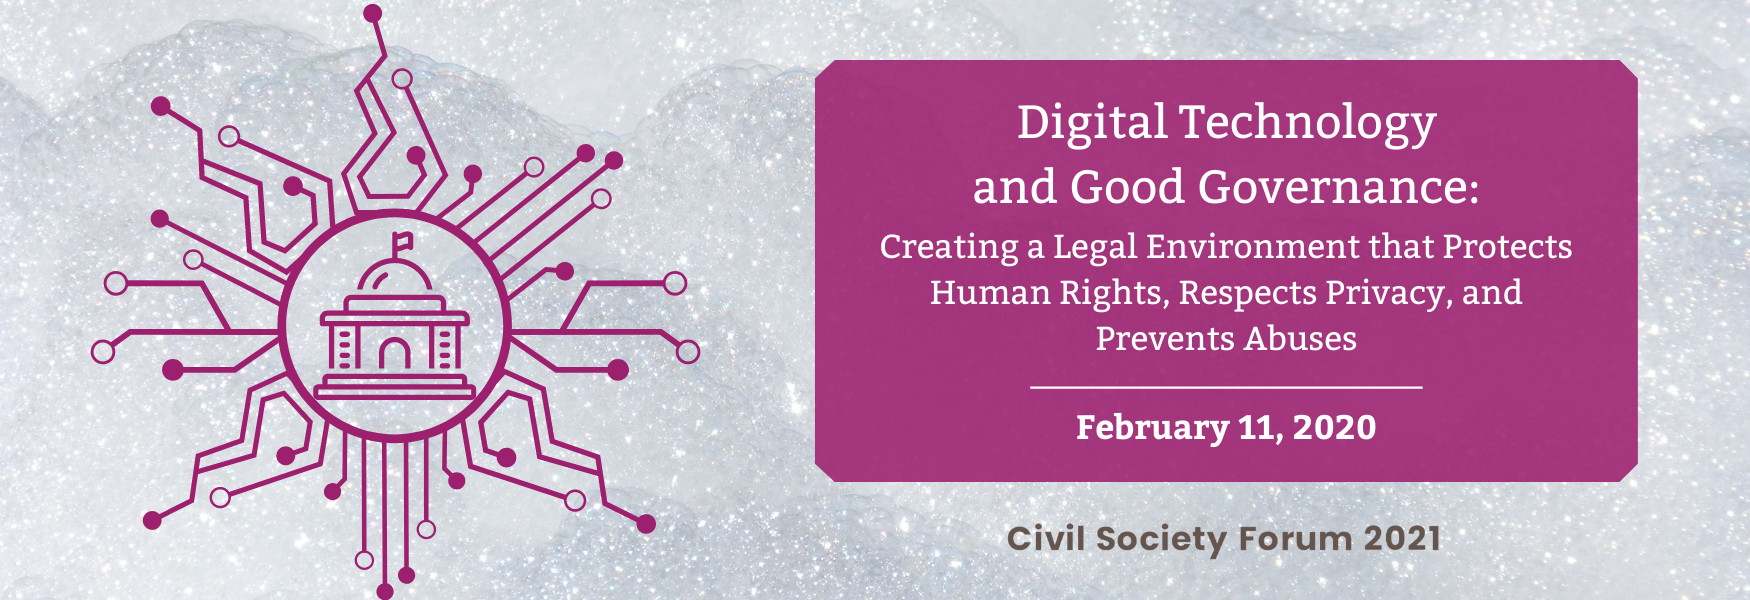 Digital Technology and Good Governance: Creating a Legal Environment that Protects Human Rights, Respects Privacy, and Prevents Abuses